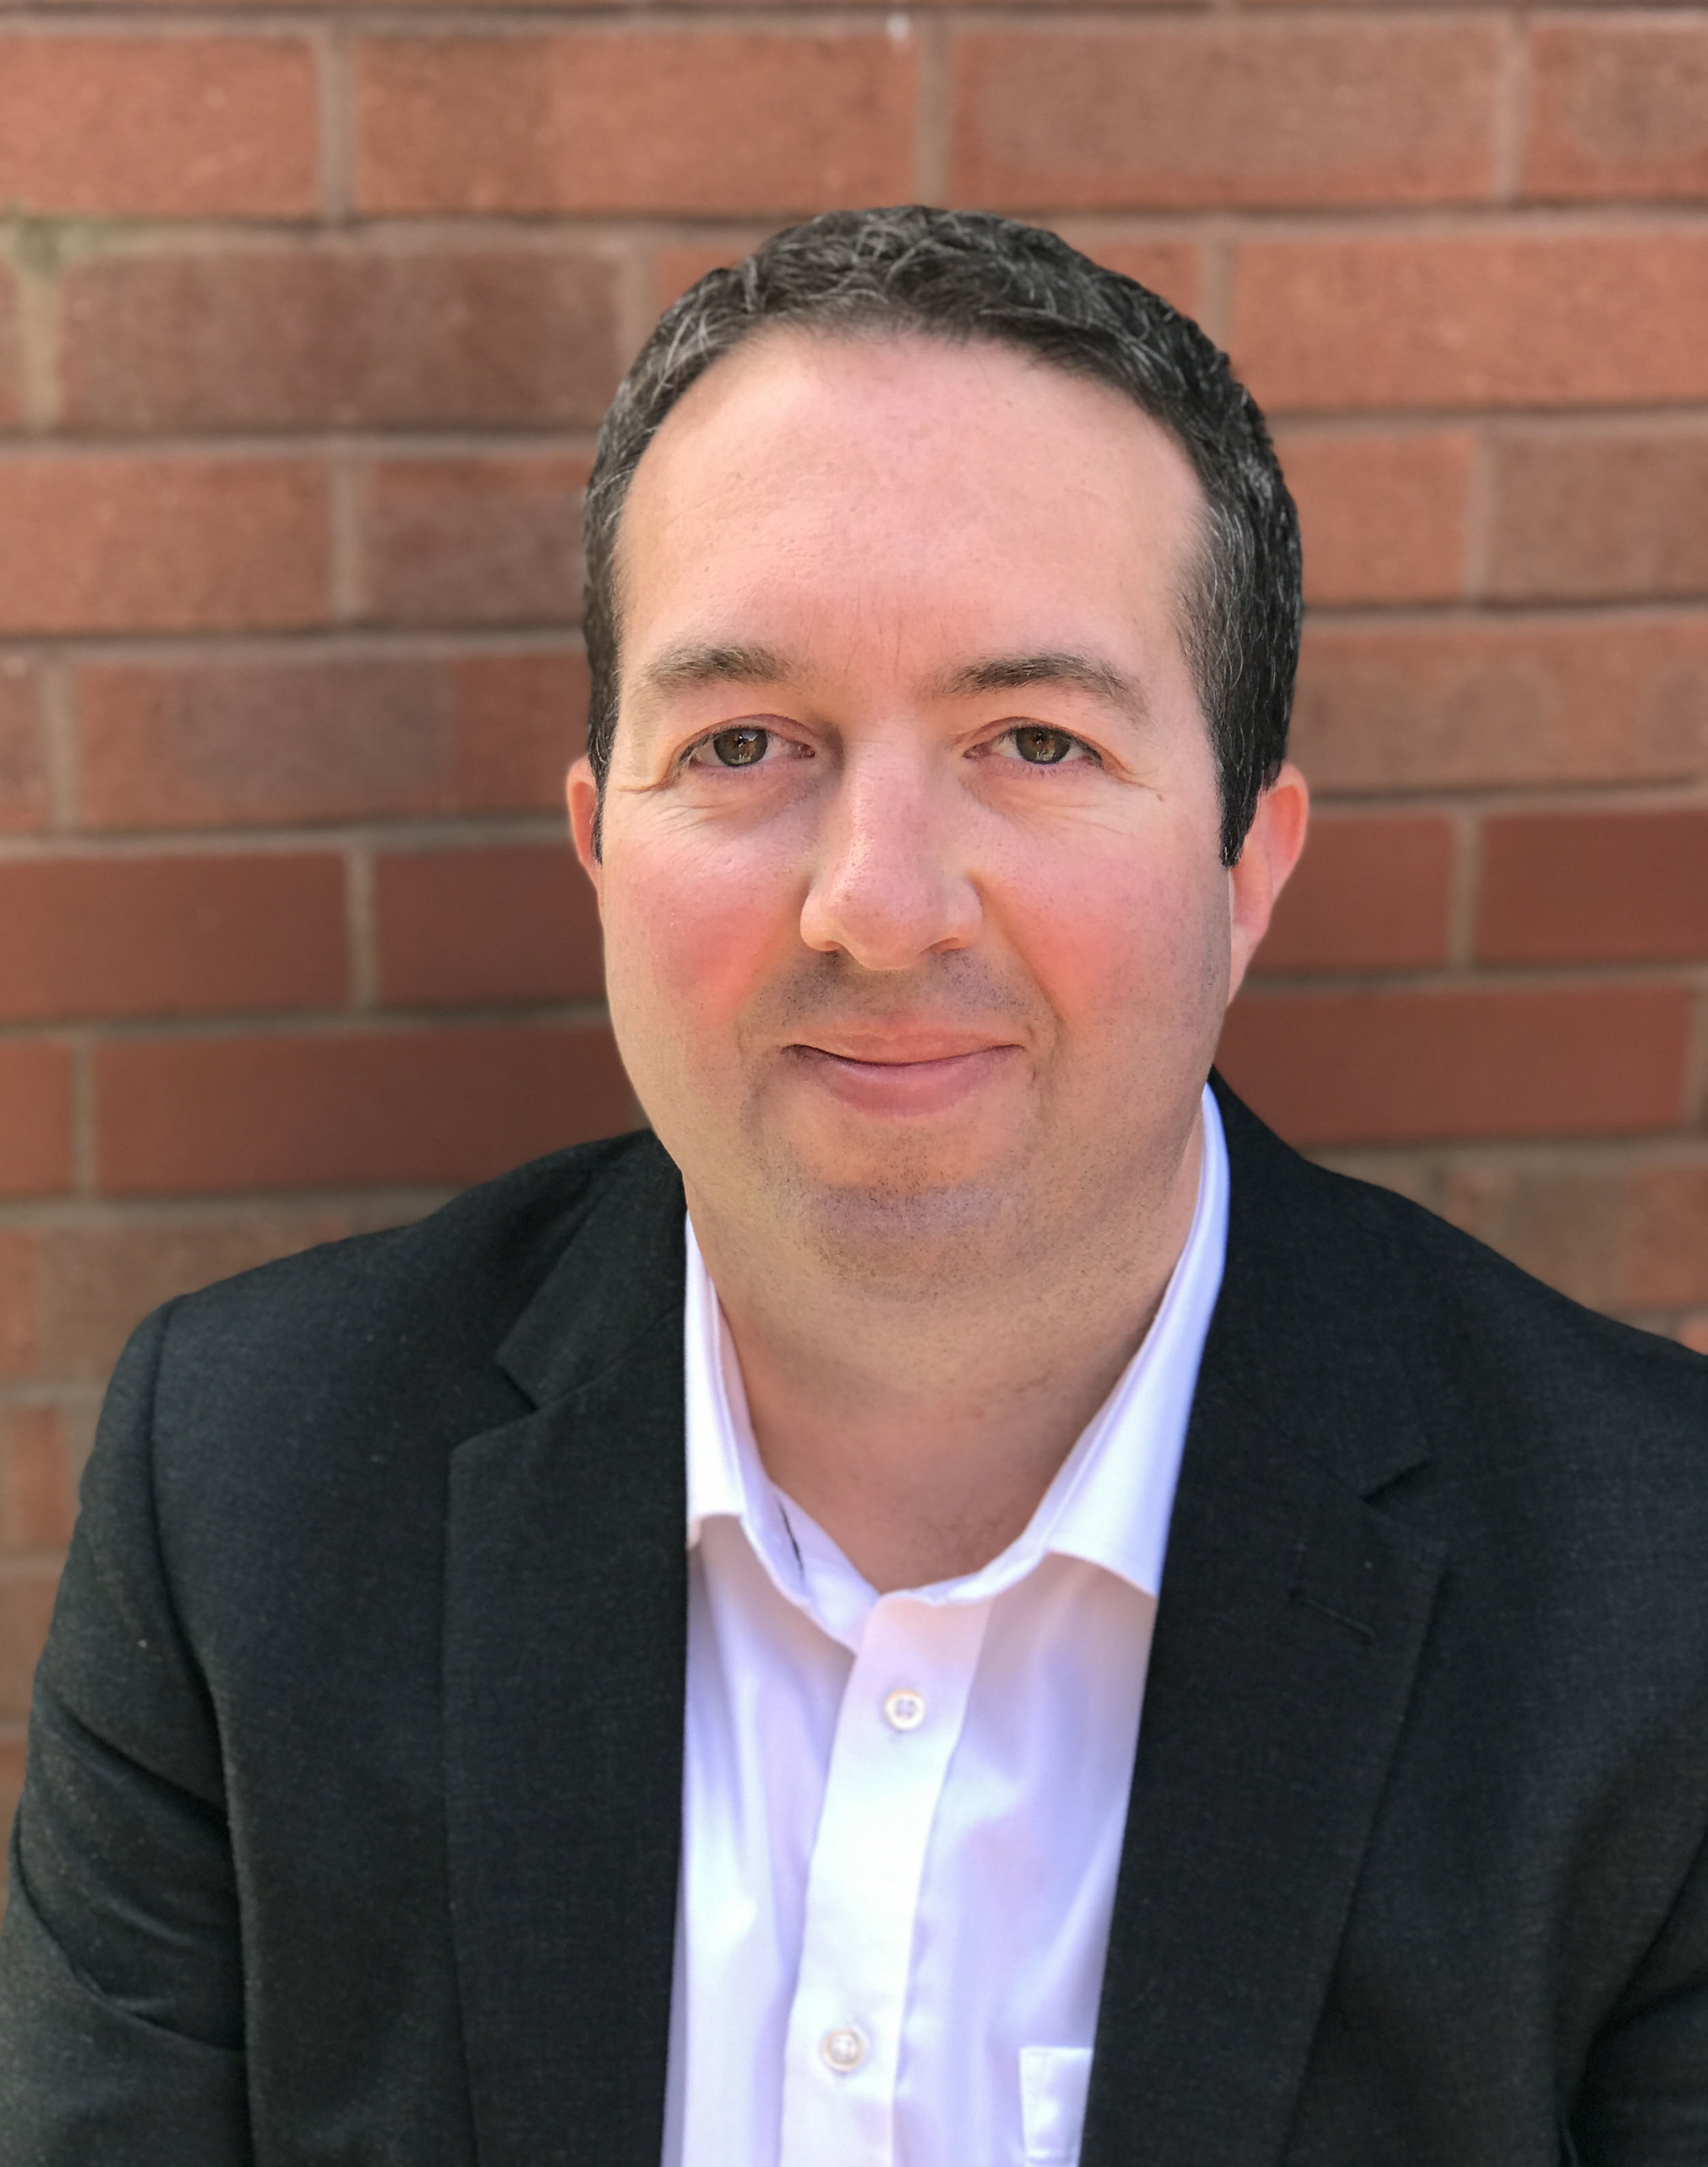 My expertise - I have over 20 years' experience in management systems, including working as an assessor at BSI (British Standards Institute), a leading global certification body.I'm passionate about implementing best practice and providing real value to go beyond small basic improvements - I help businesses go further and can help you create real significant change, improving growth, performance and reducing risk.No two business are the same, therefore 'copying' and 'pasting' a system is unlikely the right fit for you. I provide a custom solution whilst staying efficient. Clients have been impressed by just how quickly solutions have been implemented.I have a suite of professional qualifications including a management and leadership diploma, HND (science/engineering subject), NEBOSH, IRCA & BSI certified Lead Auditor and have held a number of professional memberships.I have a wide breadth of learning bringing a versatile and pragmatic skillset that can benefit any organisation.I am based centrally (Milton Keynes) in the UK, but travel wherever is needed to fulfil my client's requirements.I have supported hundreds of organisations from small business owners right through to global blue-chip organisations. Let me help you to embed effective change and innovation.